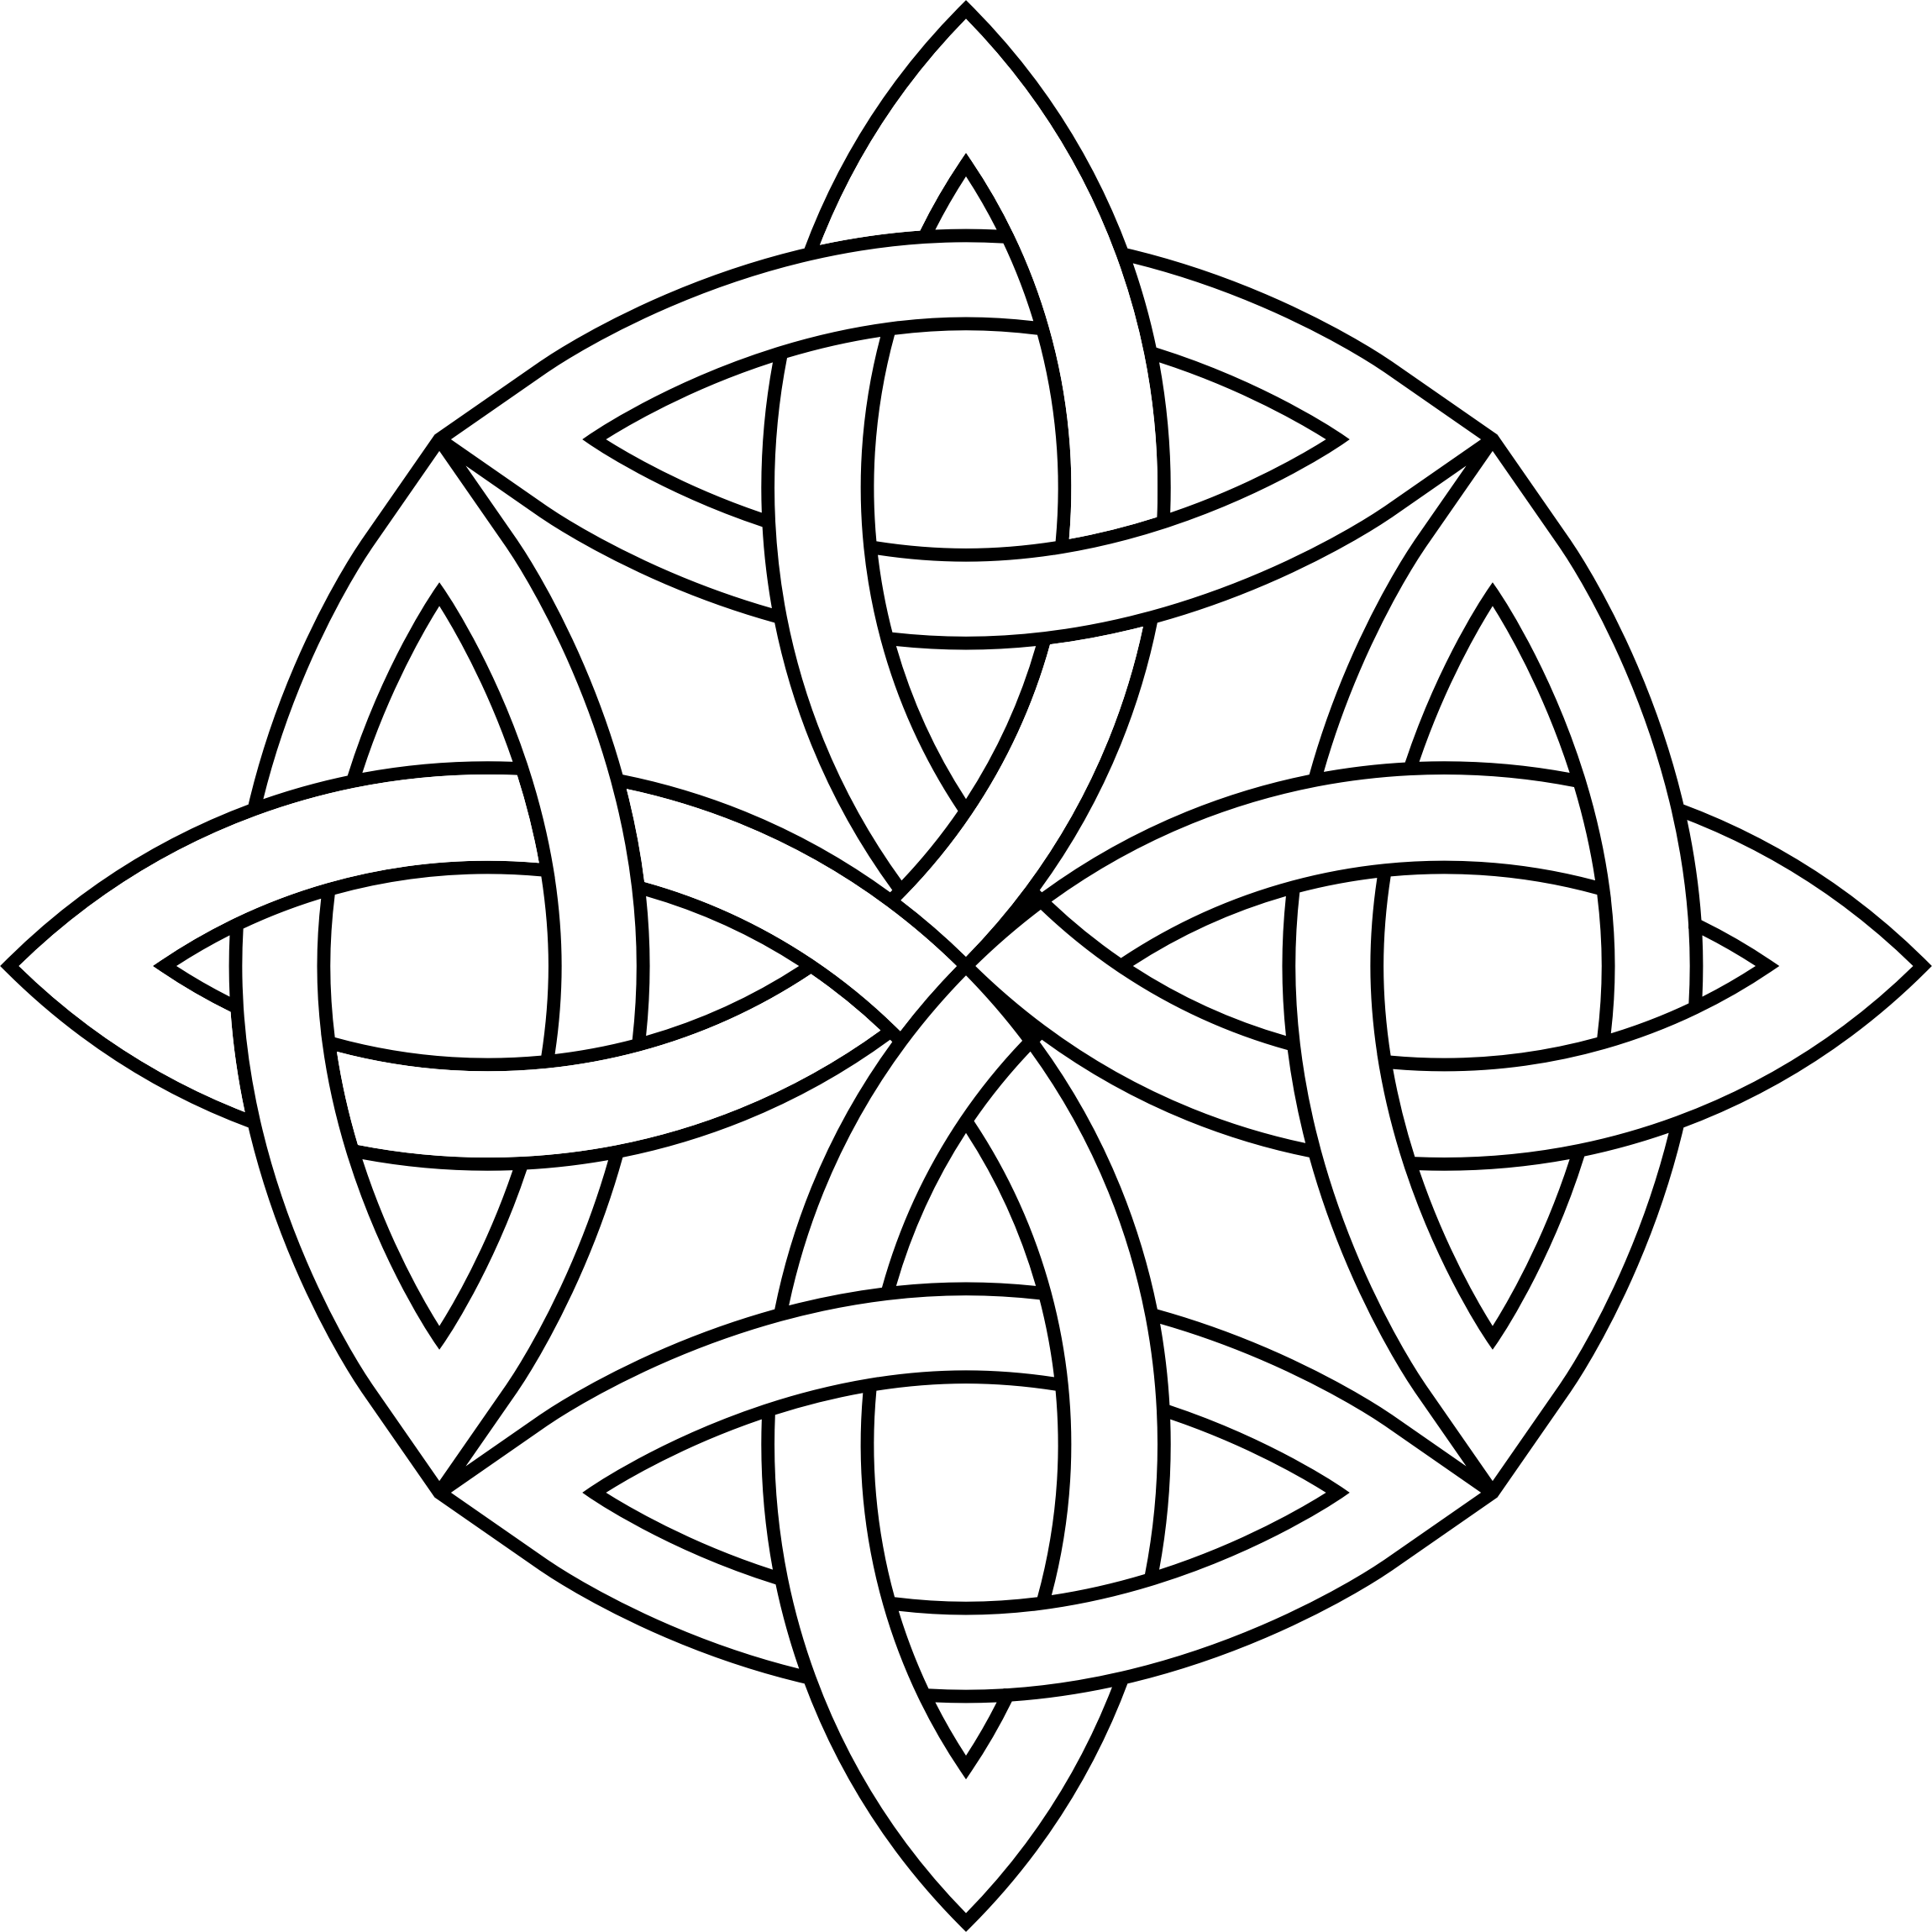 celtic drawings celtic knots drawing at getdrawings free download celtic drawings